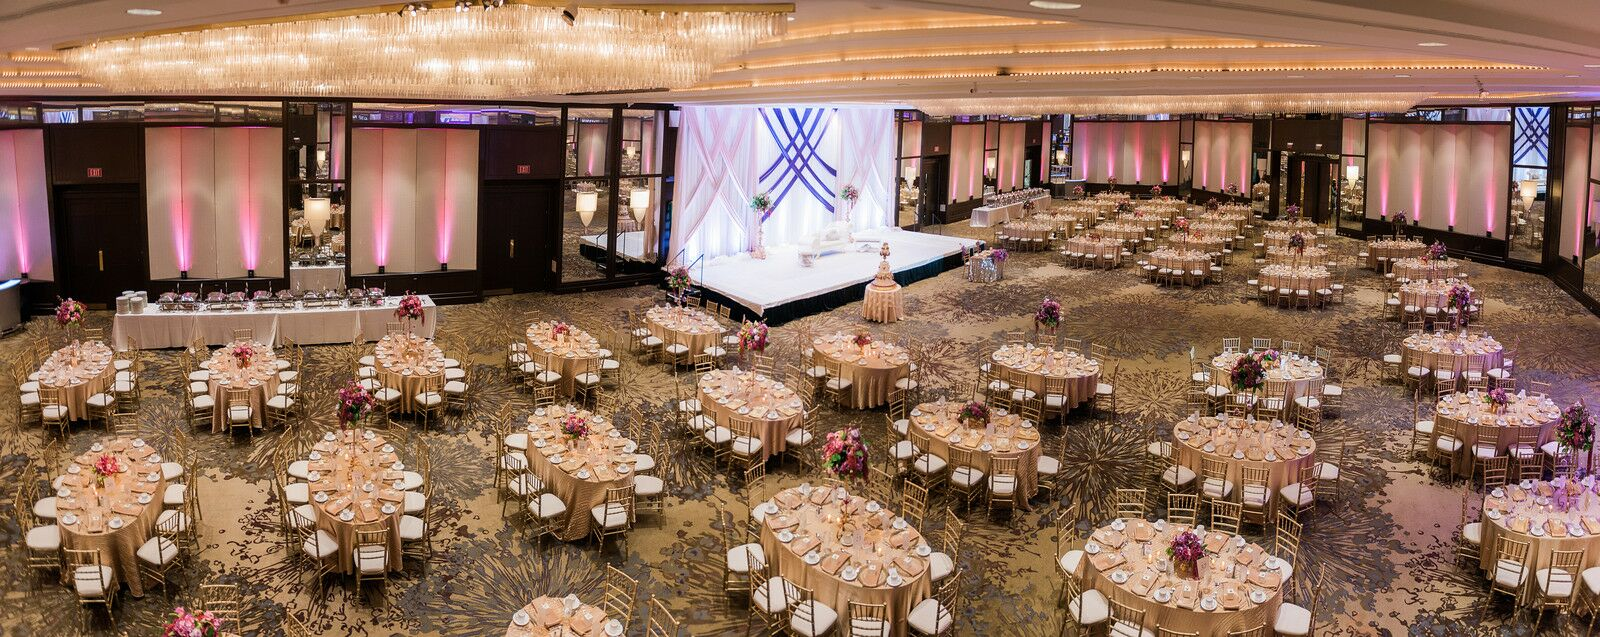 The Westin Convention Center Pittsburgh Reception Venues